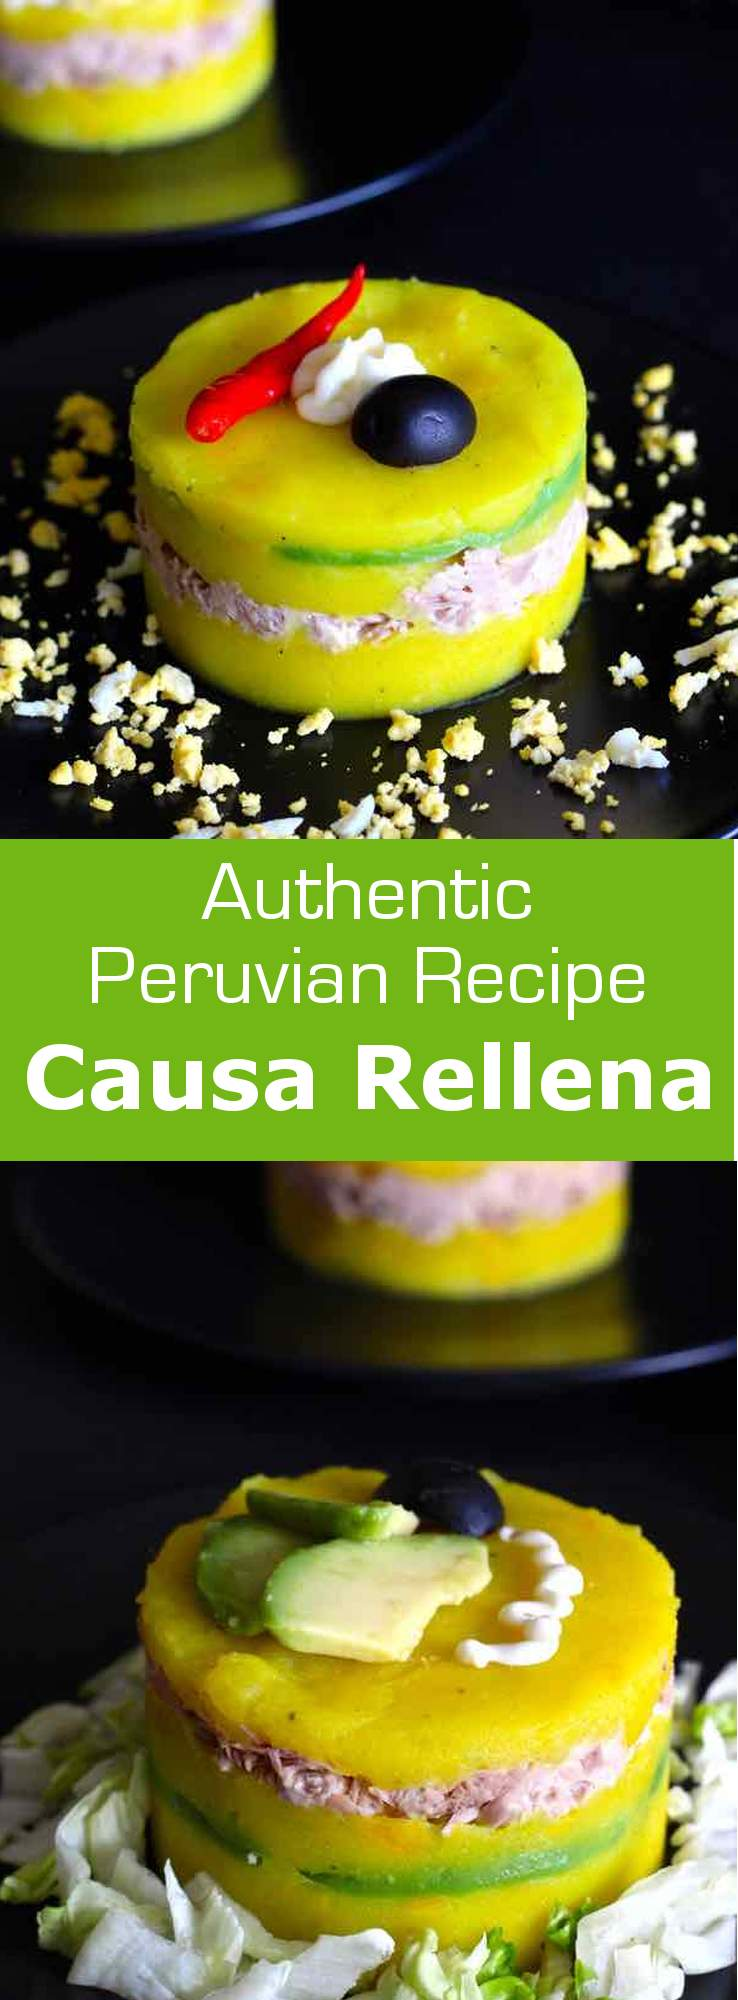 Causa rellena is an iconic recipe from Peru that combines lemony and spiced mashed potatoes with tuna or chicken or seafood and avocado. #southamerica #latinamerica #peru